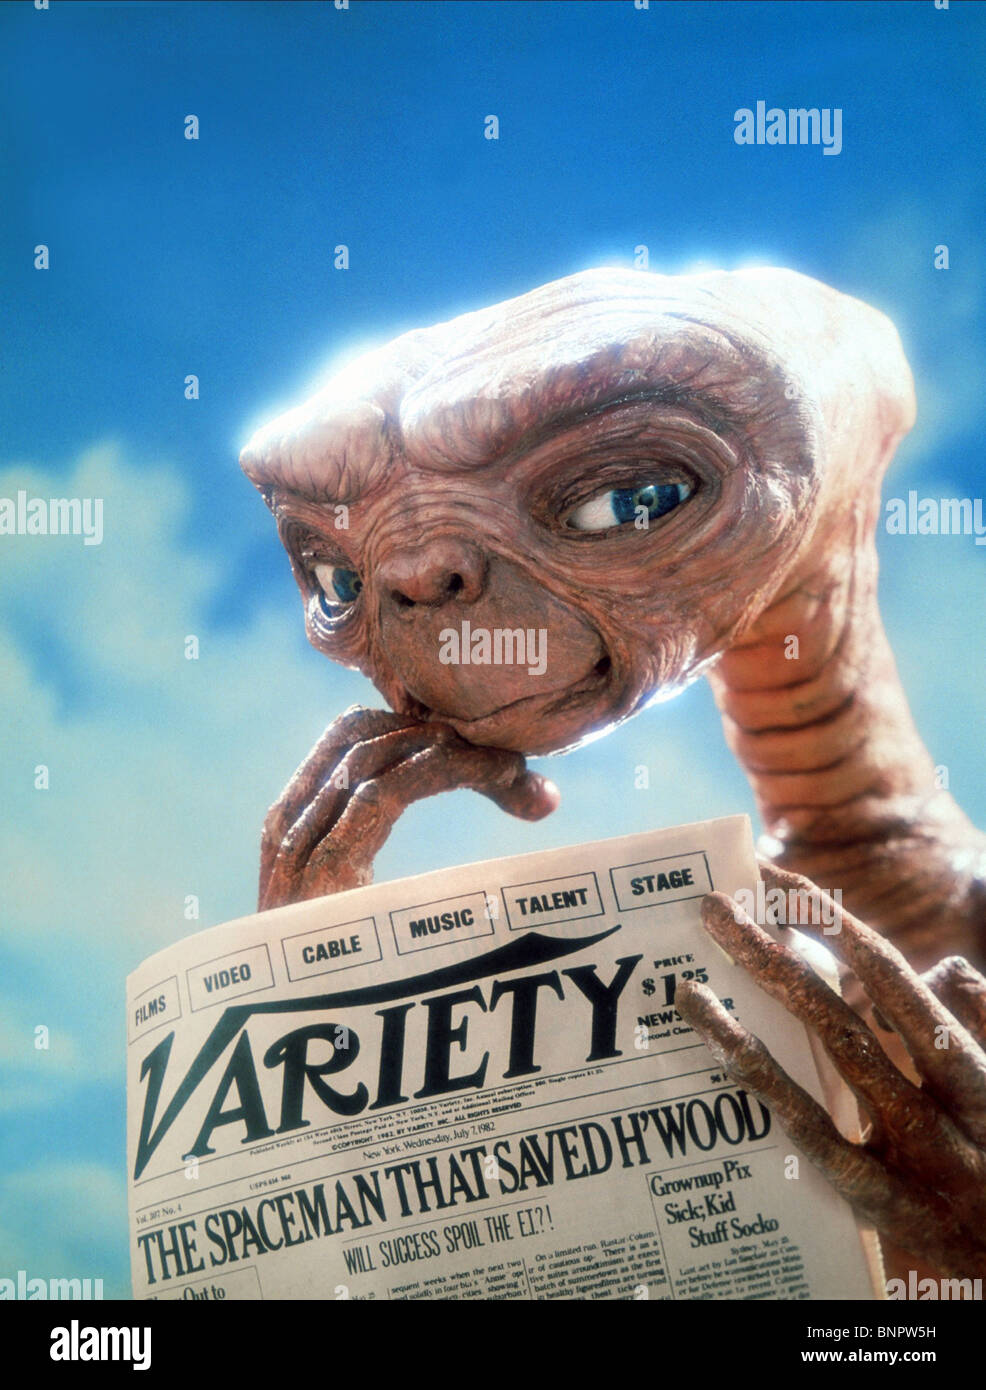 Alien Reads Newspaper E T The Extra Terrestrial 1982 Stock Photo Alamy